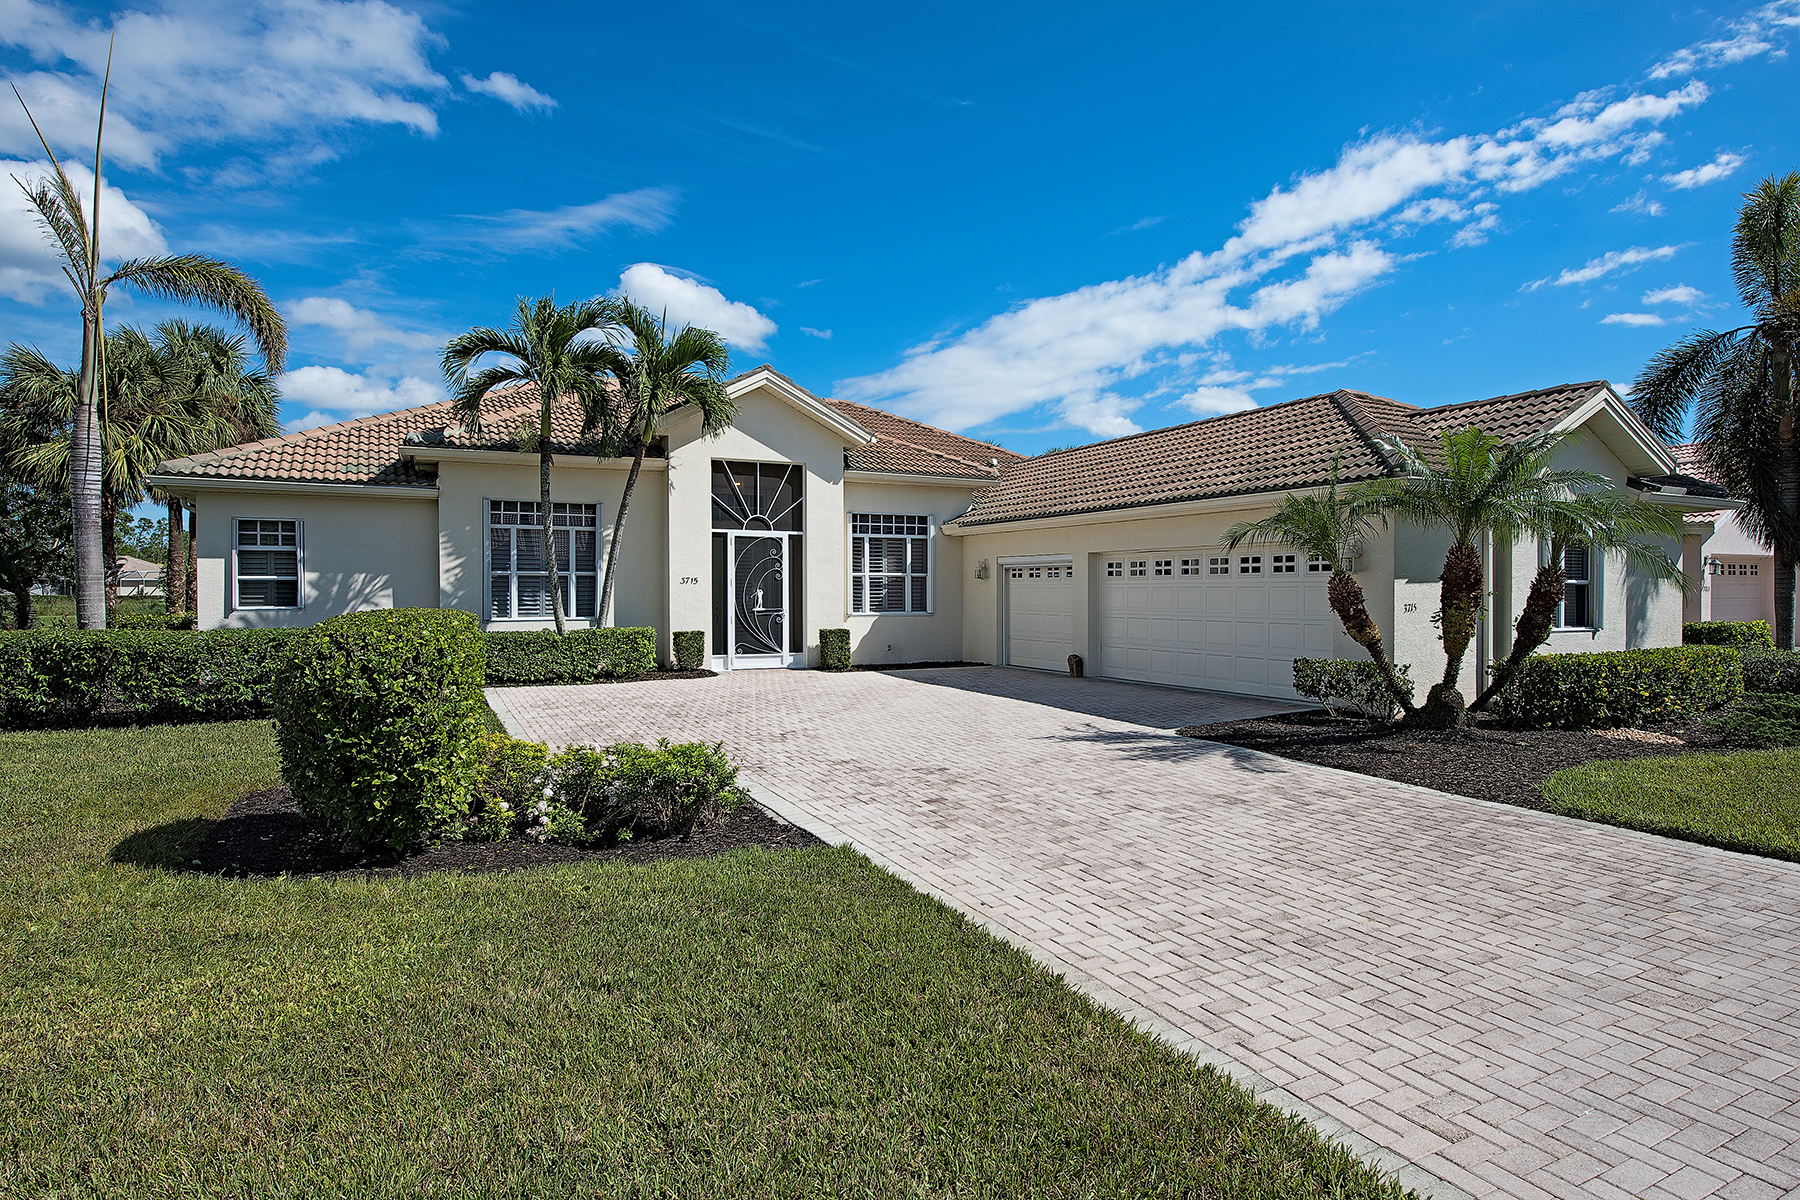 Single Family Home for Sale at FOREST GLEN 3715 Jungle Plum Dr W, Naples, Florida 34114 United States